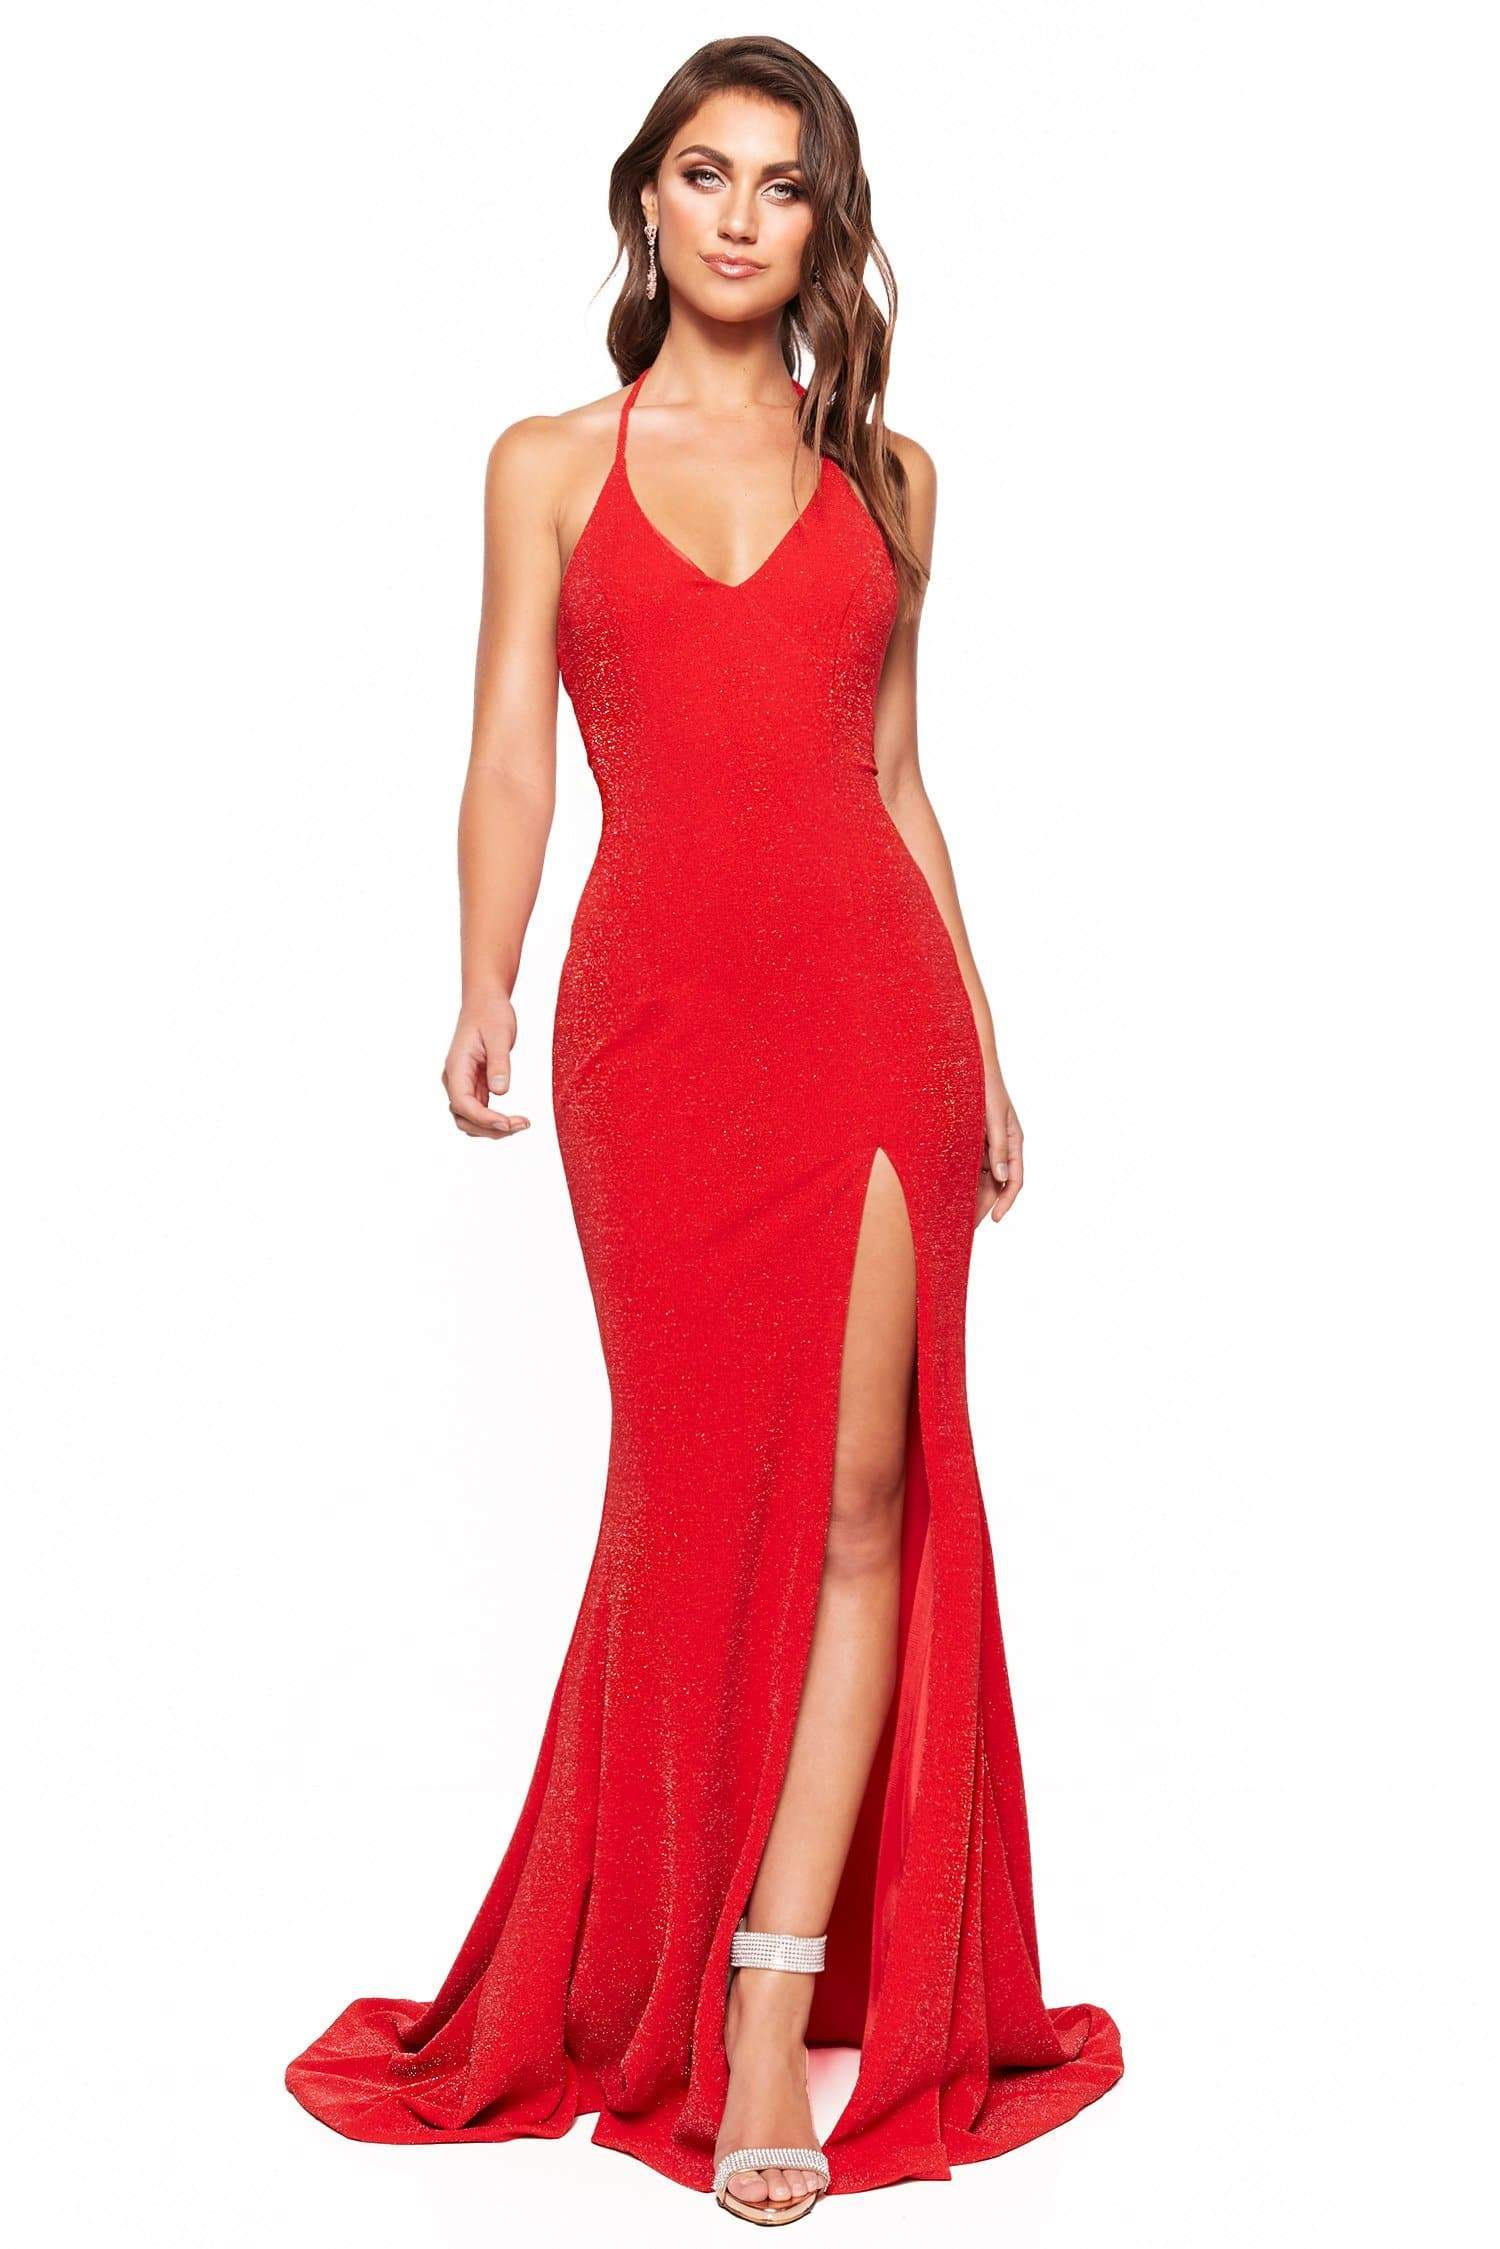 adc9abf6106 A N Luxe Felicity - Red Shimmering Gown with Halter Neck   Side slit ...